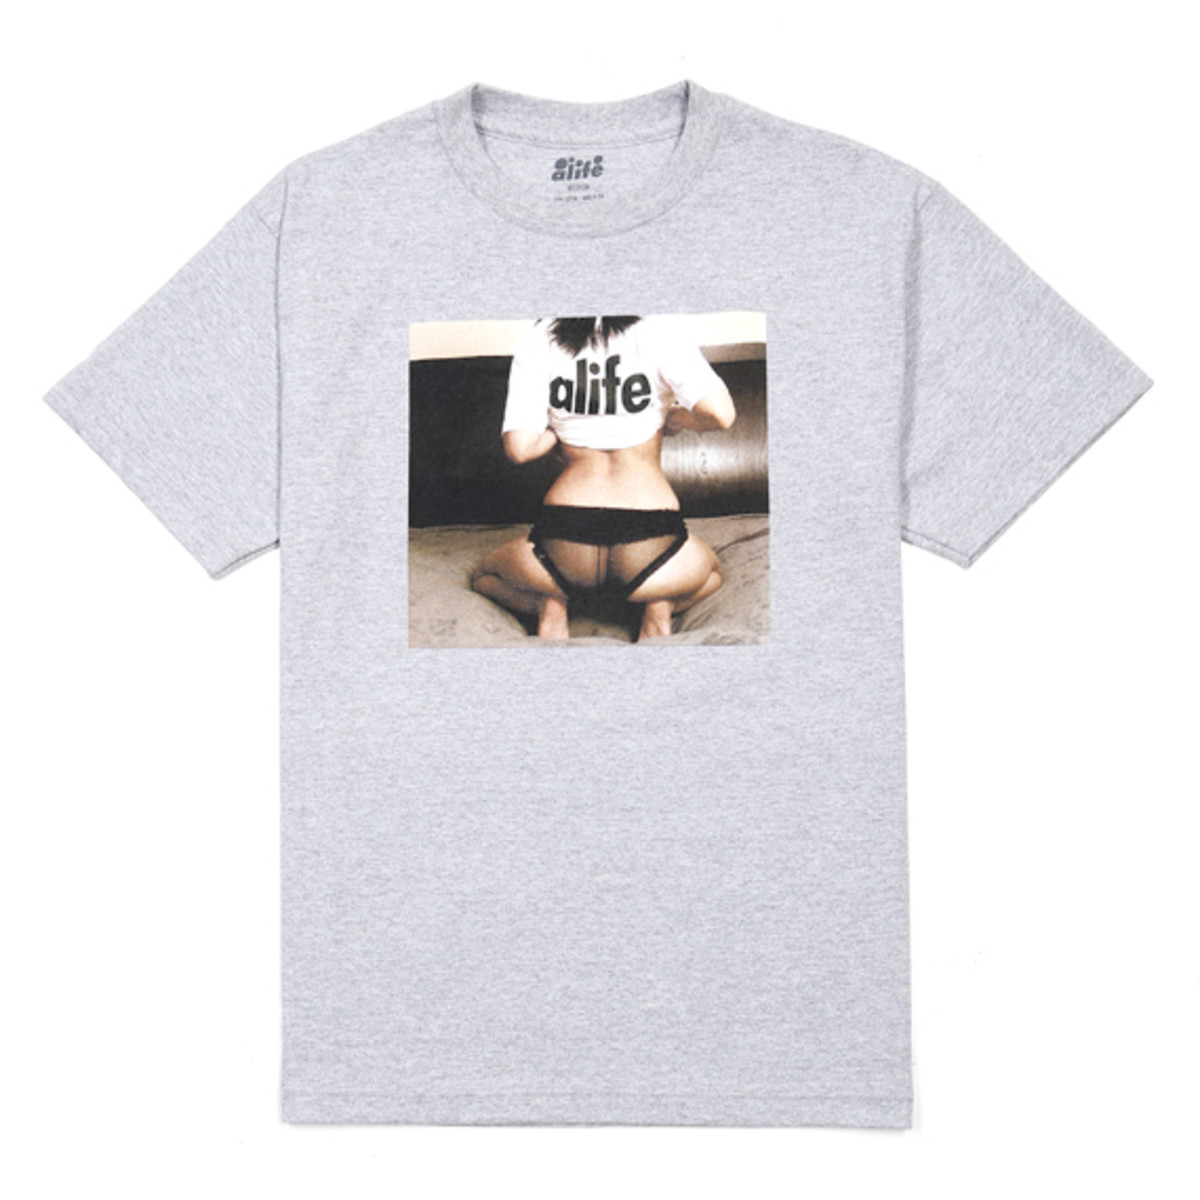 alife-tshirts-october-2013-releases-04